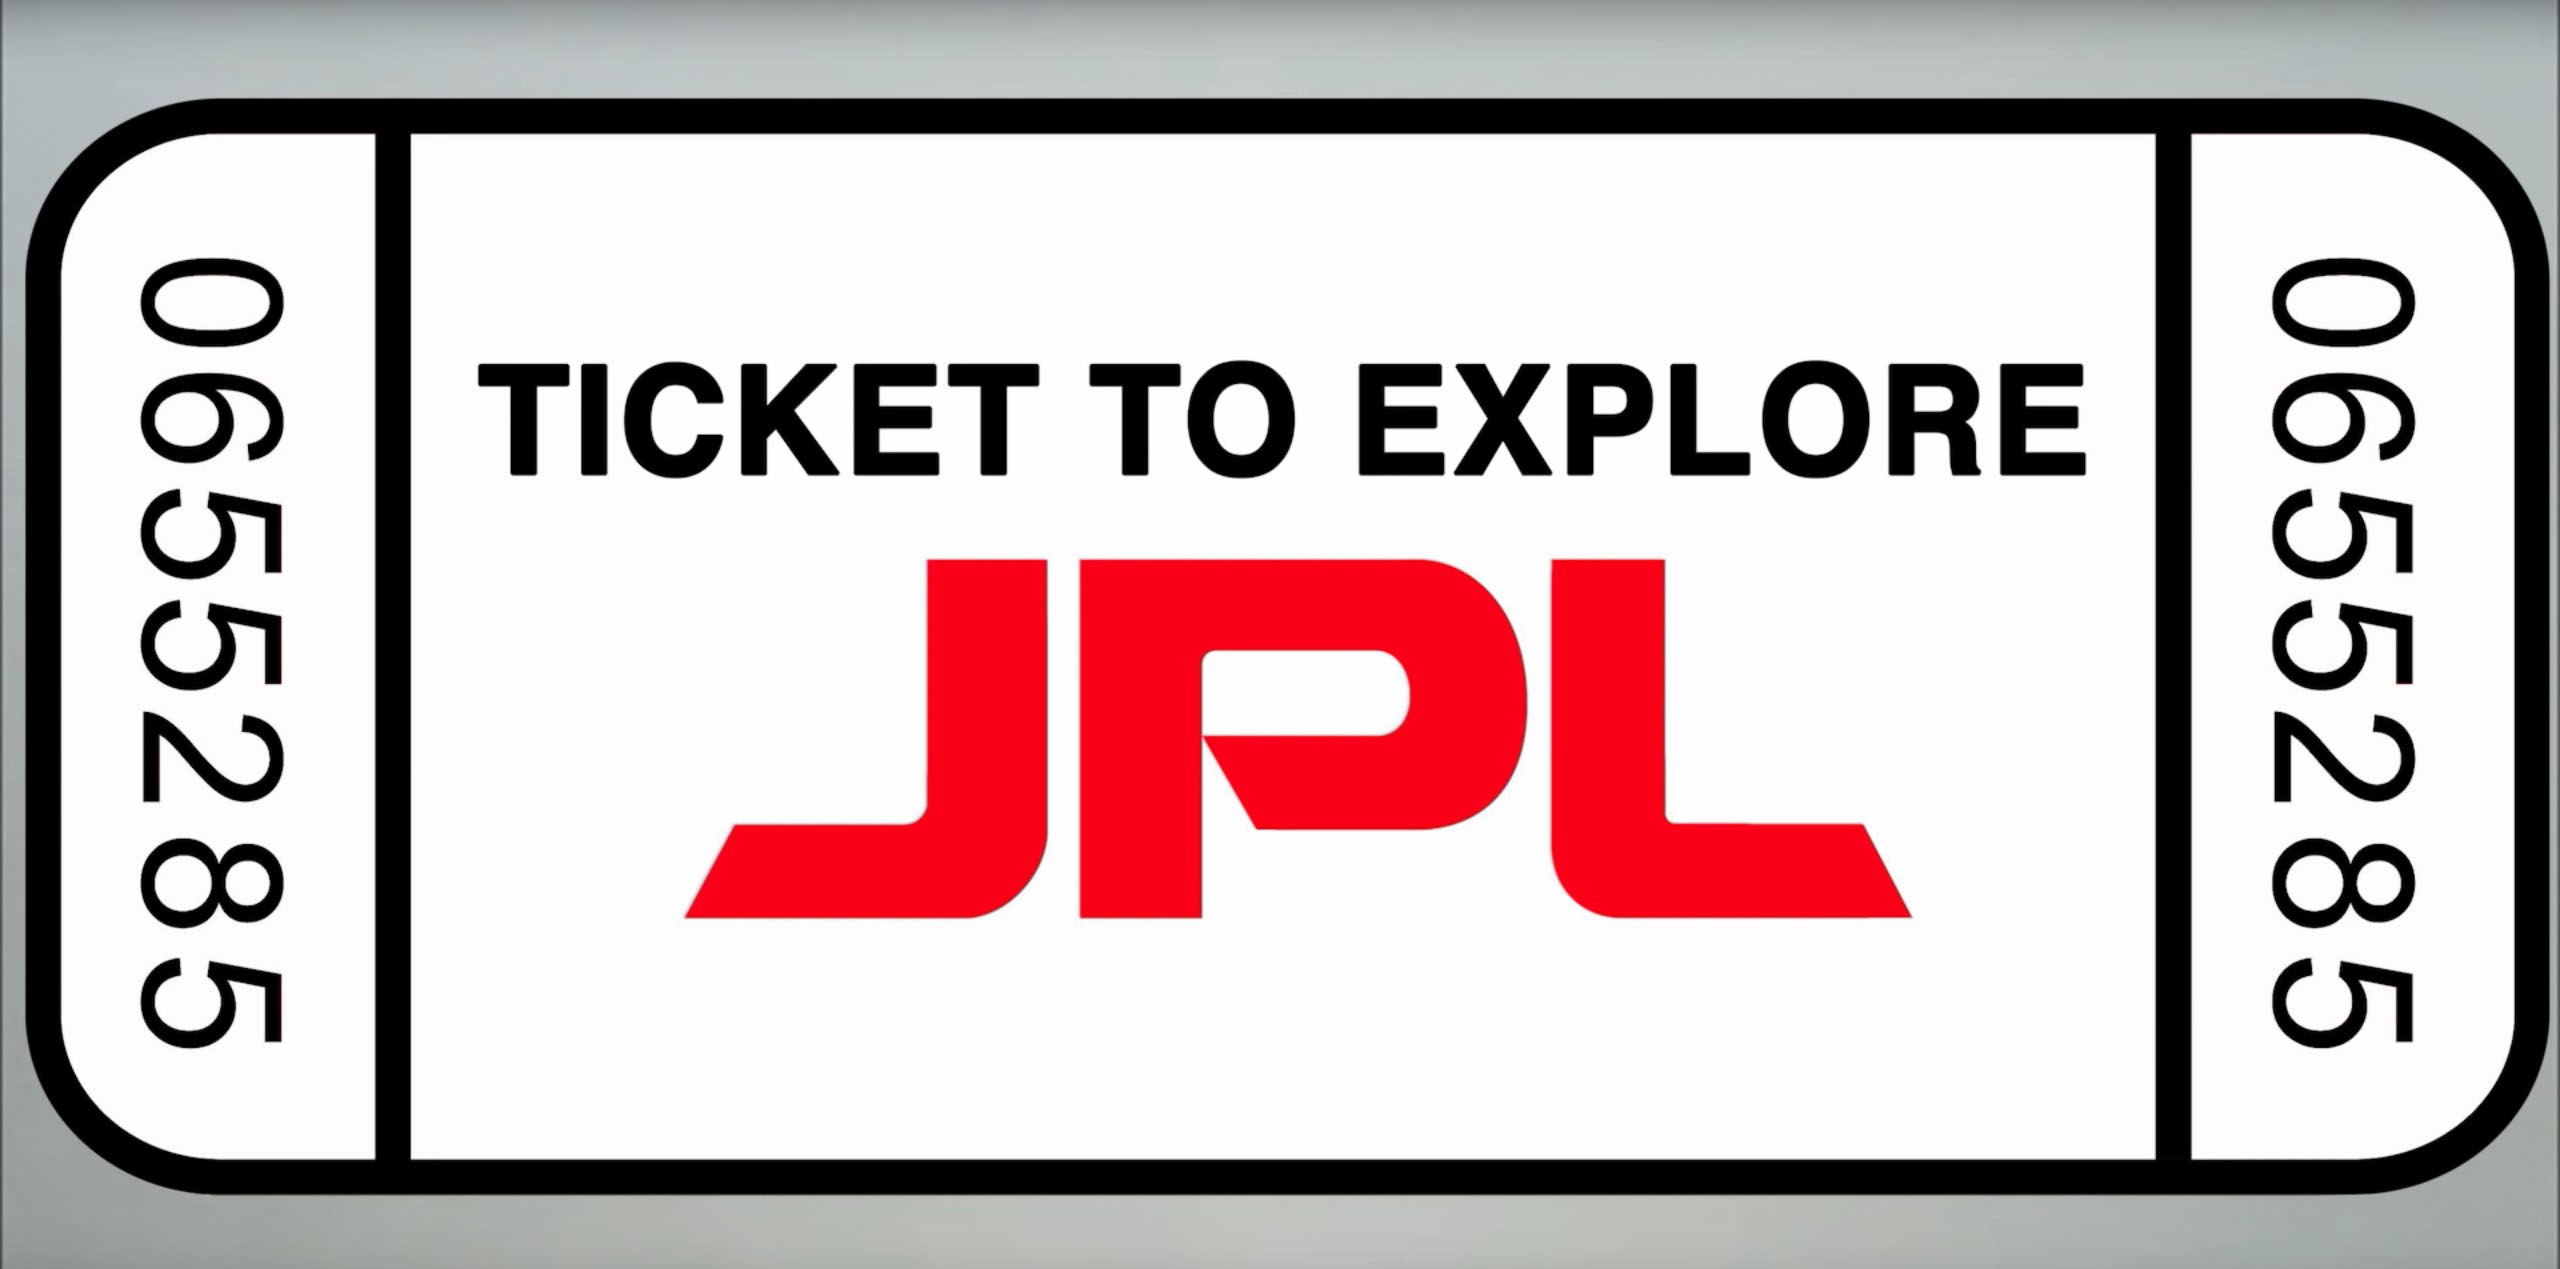 Ticket to Explore JPL - Introduction Video